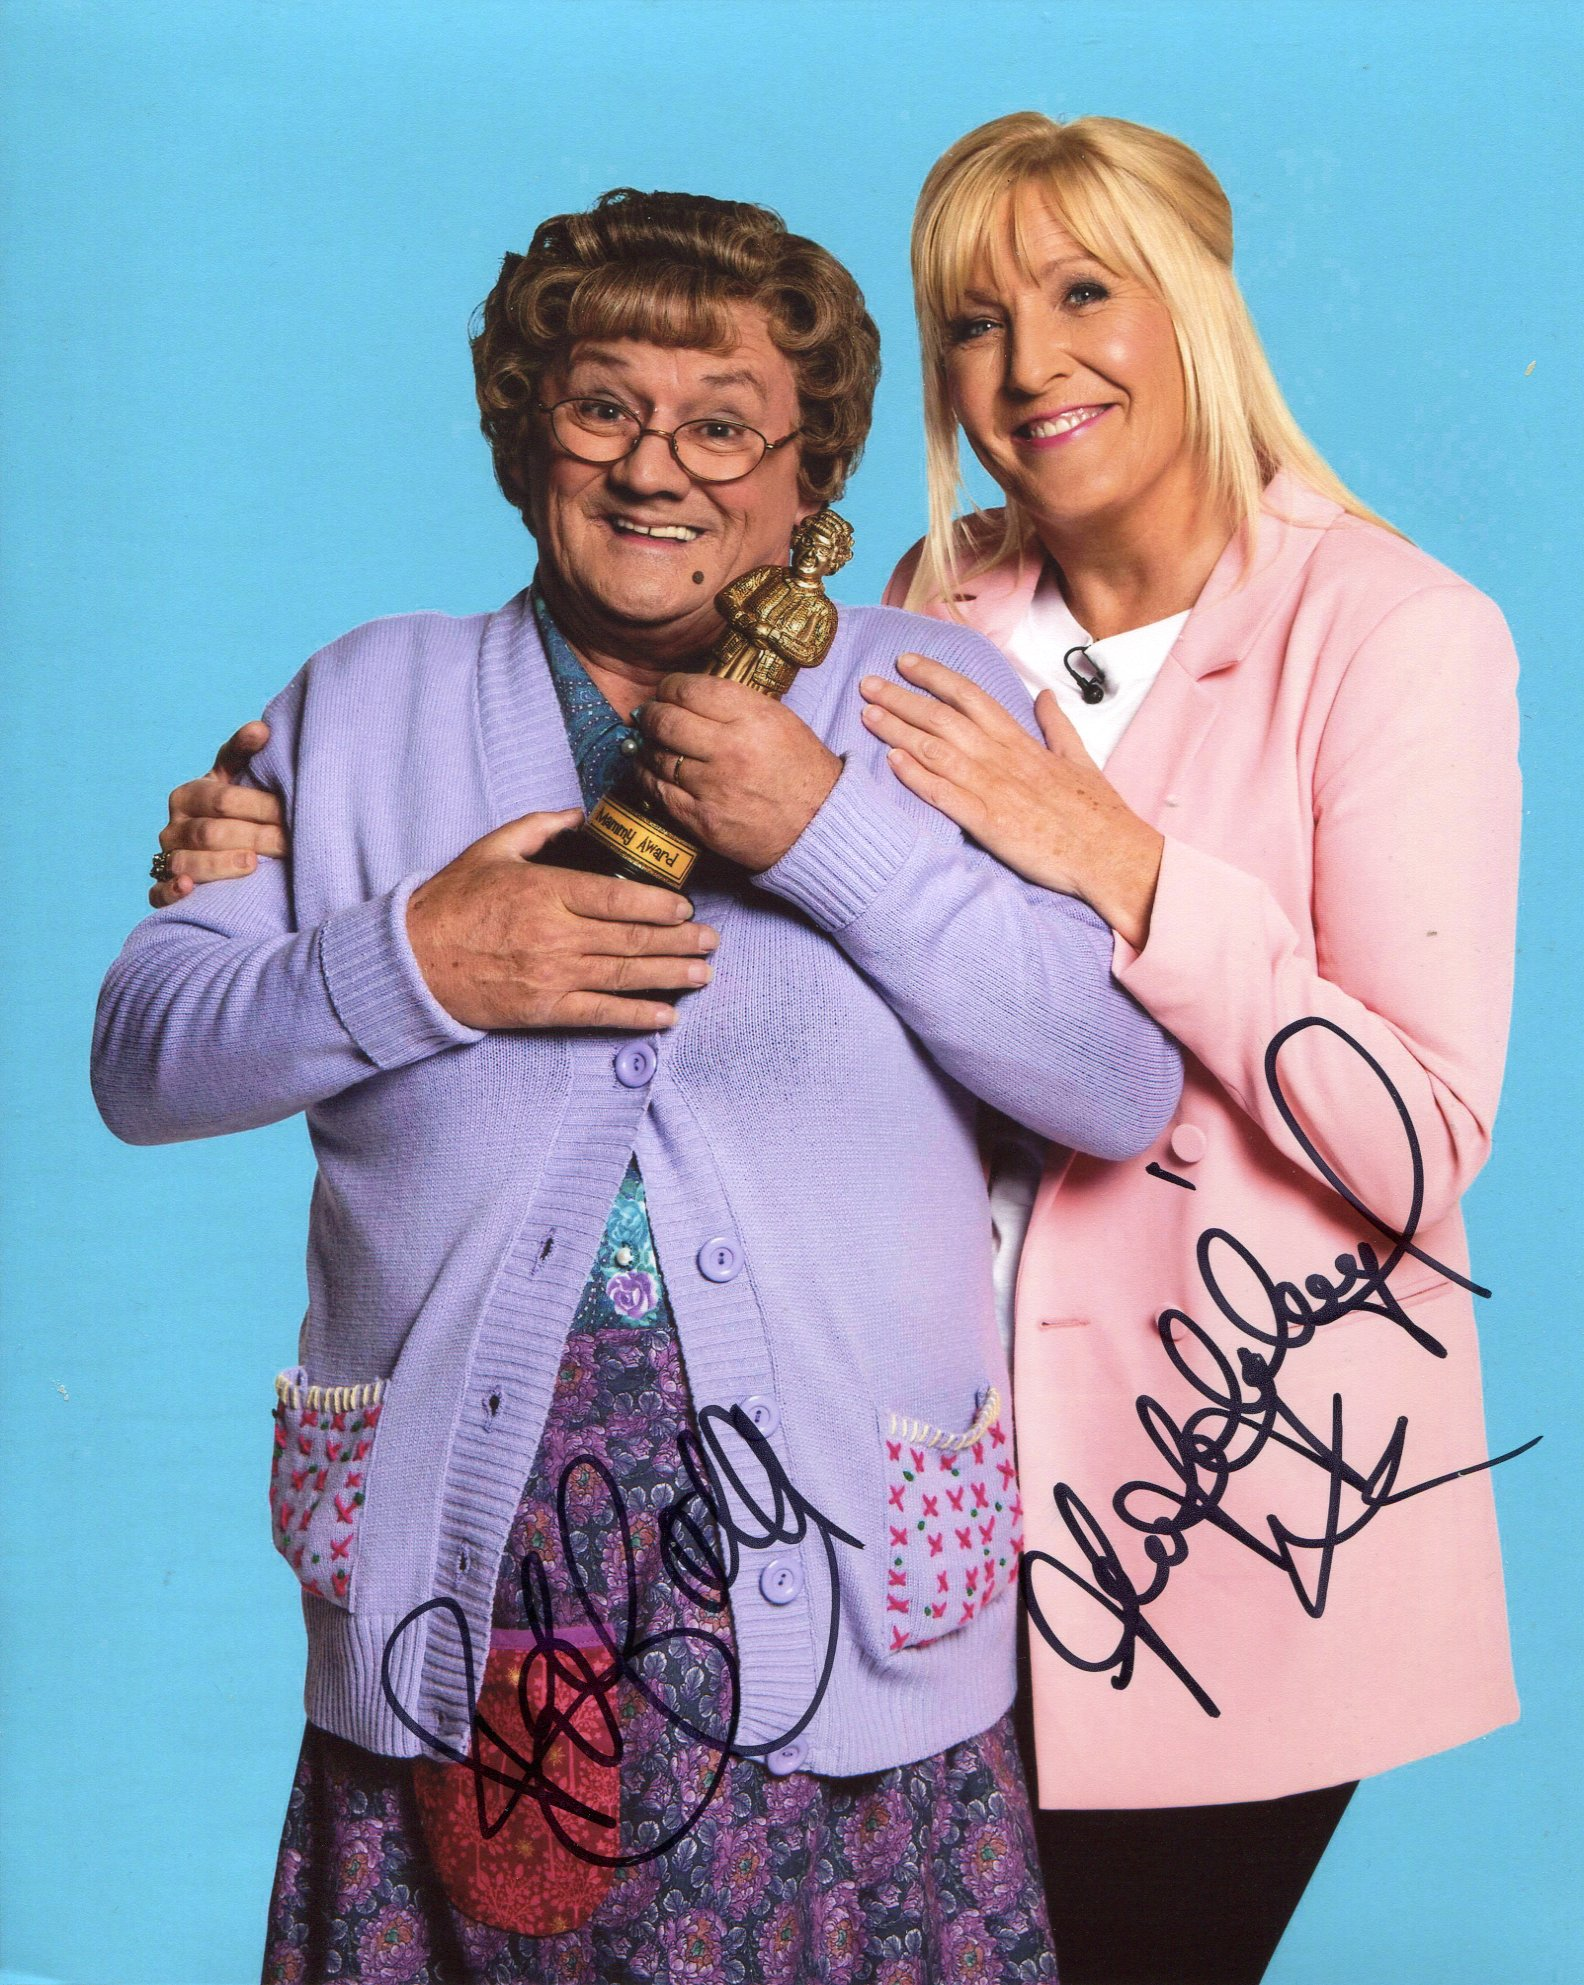 Mrs Browns Boys 8x10 photo signed by both Brendan O'Carroll and Jennifer Gibney. Good condition. All